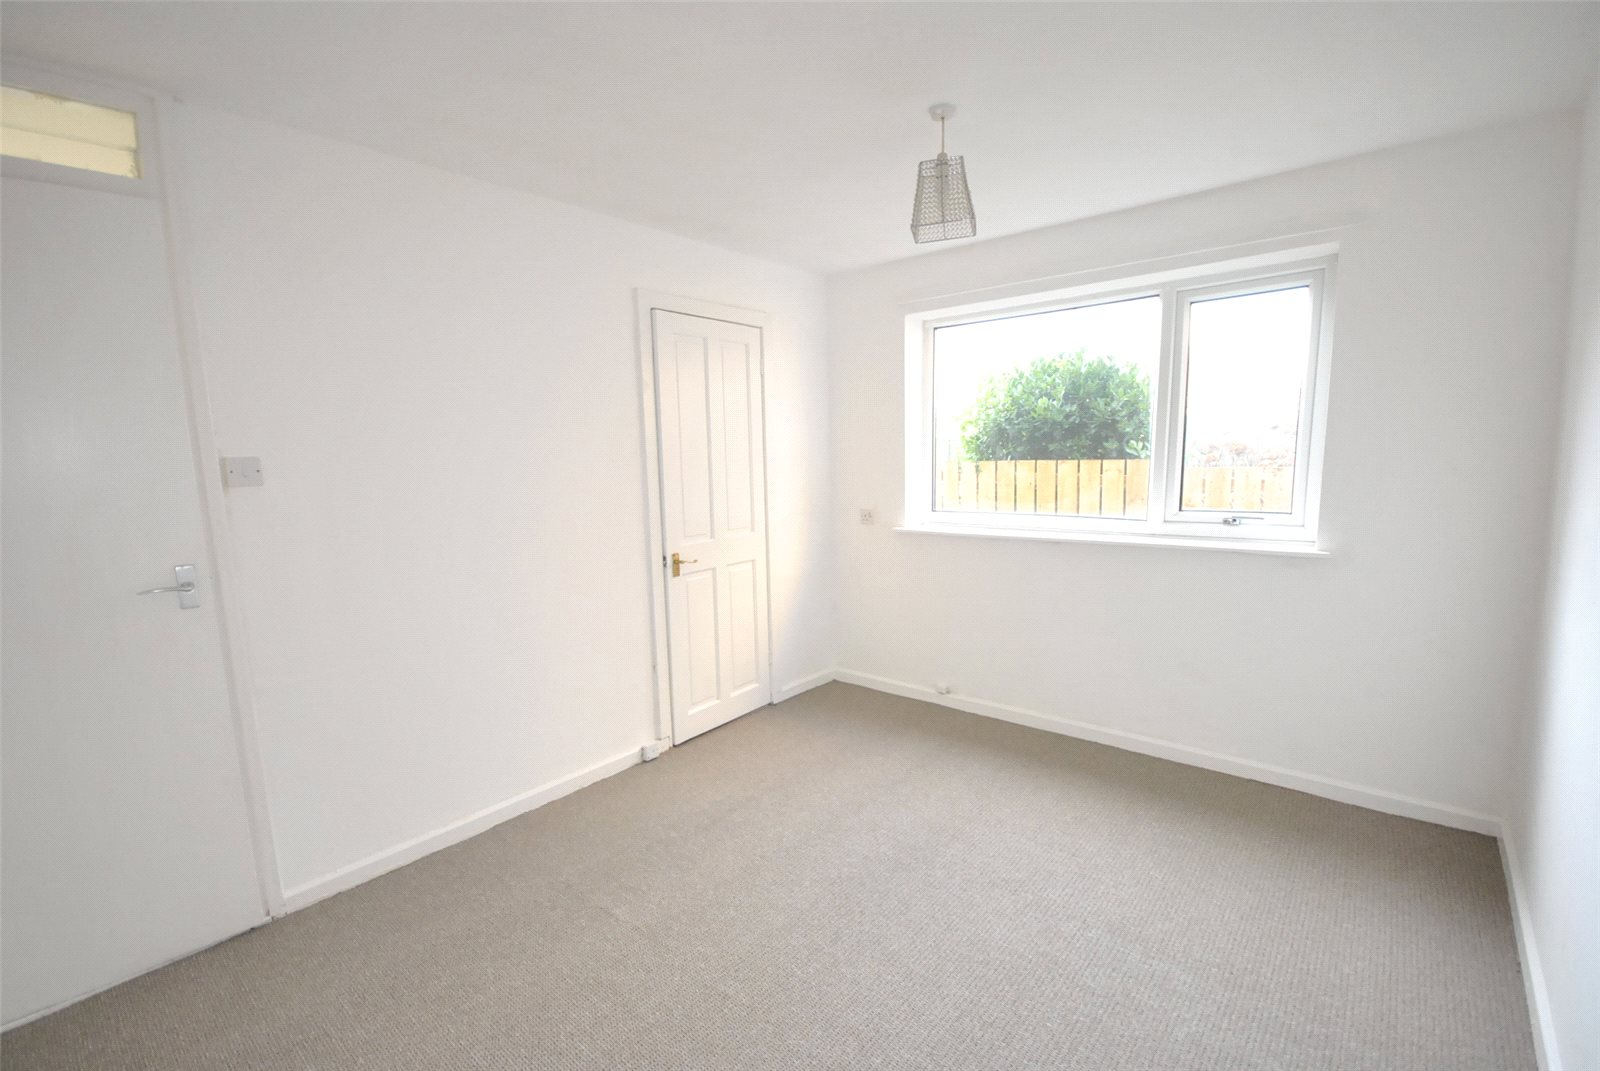 property for sale in Adel, interior reception room empty